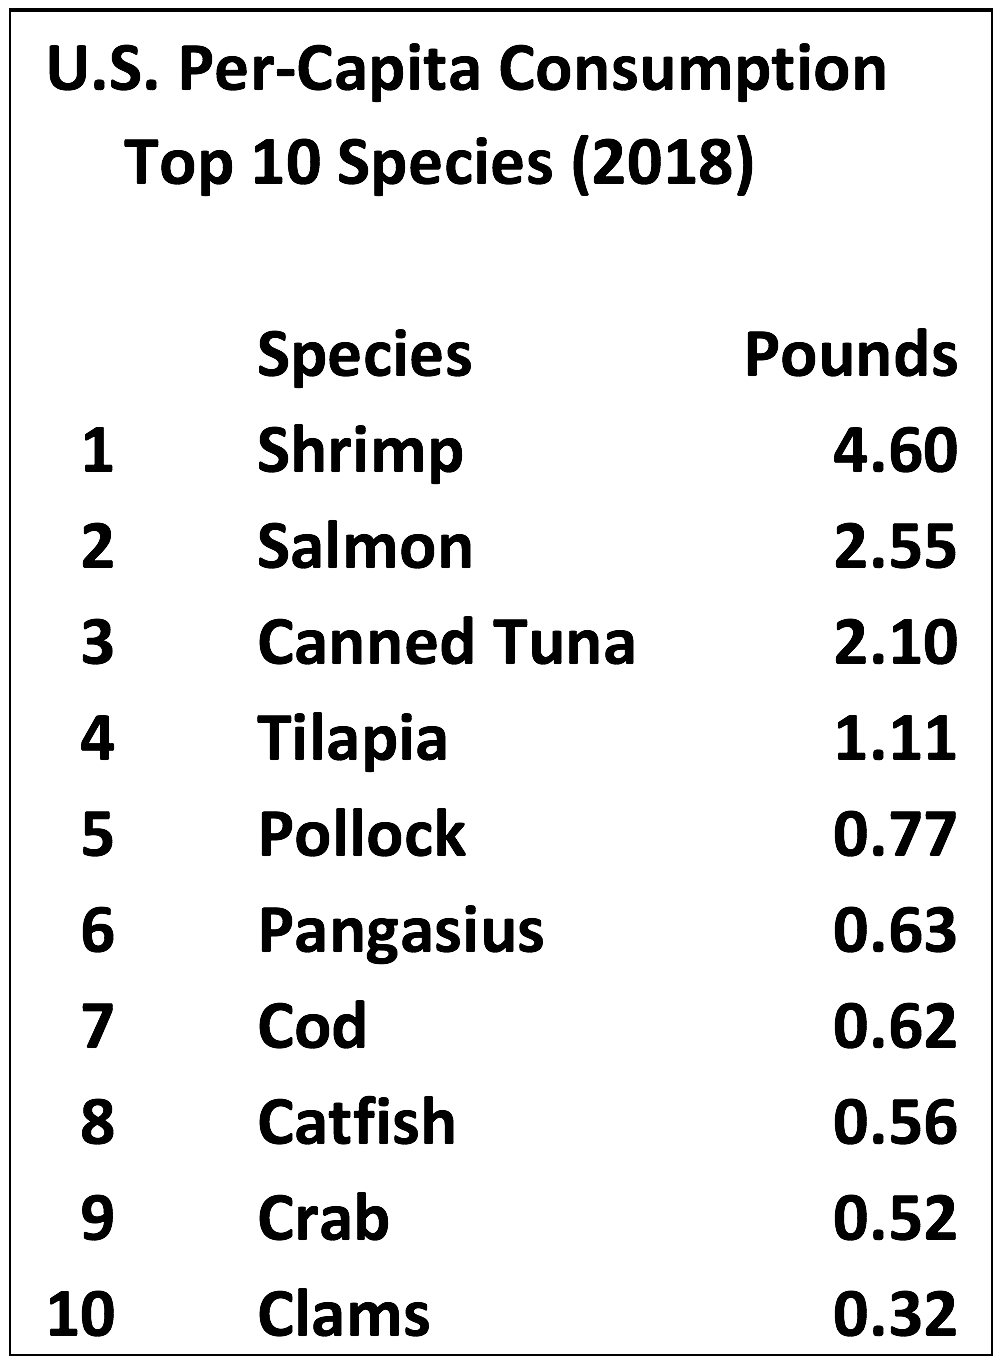 US Per-Capita Consumption chart of the Top Ten Species. Source: https://www.aboutseafood.com/about/top-ten-list-for-seafood-consumption/